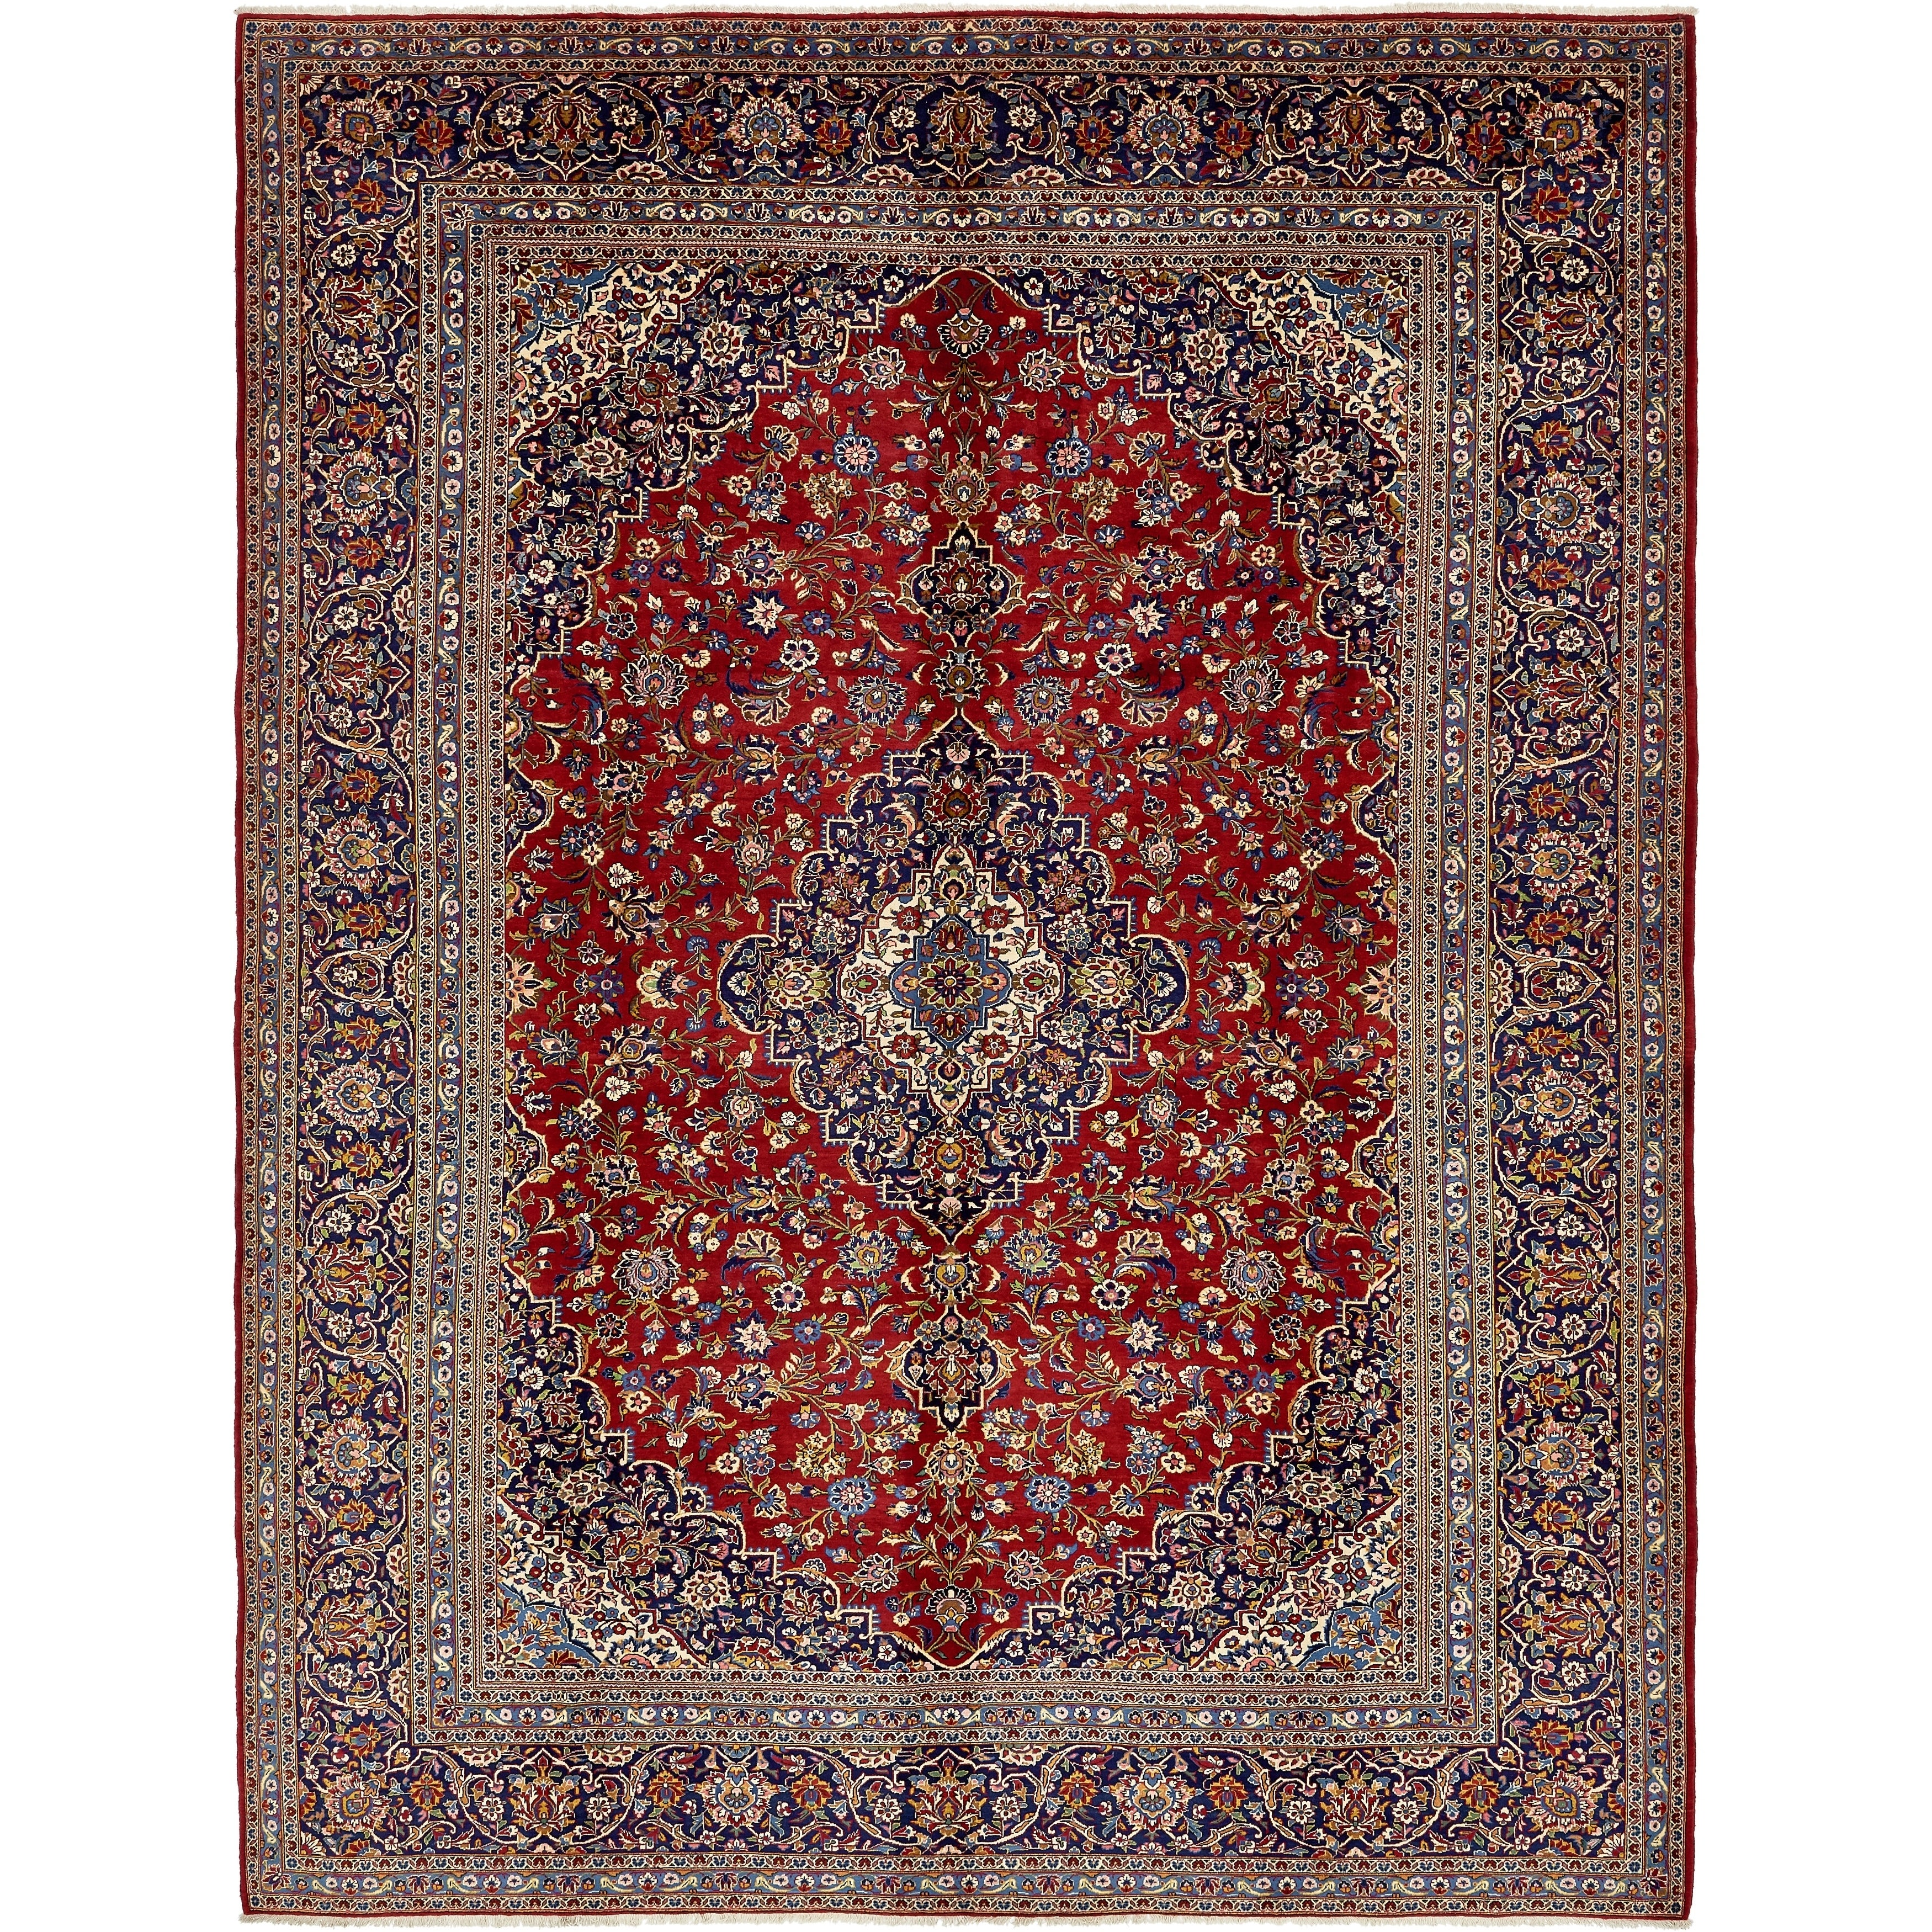 Hand Knotted Kashan Semi Antique Wool Area Rug - 10 9 x 14 2 (Red - 10 9 x 14 2)